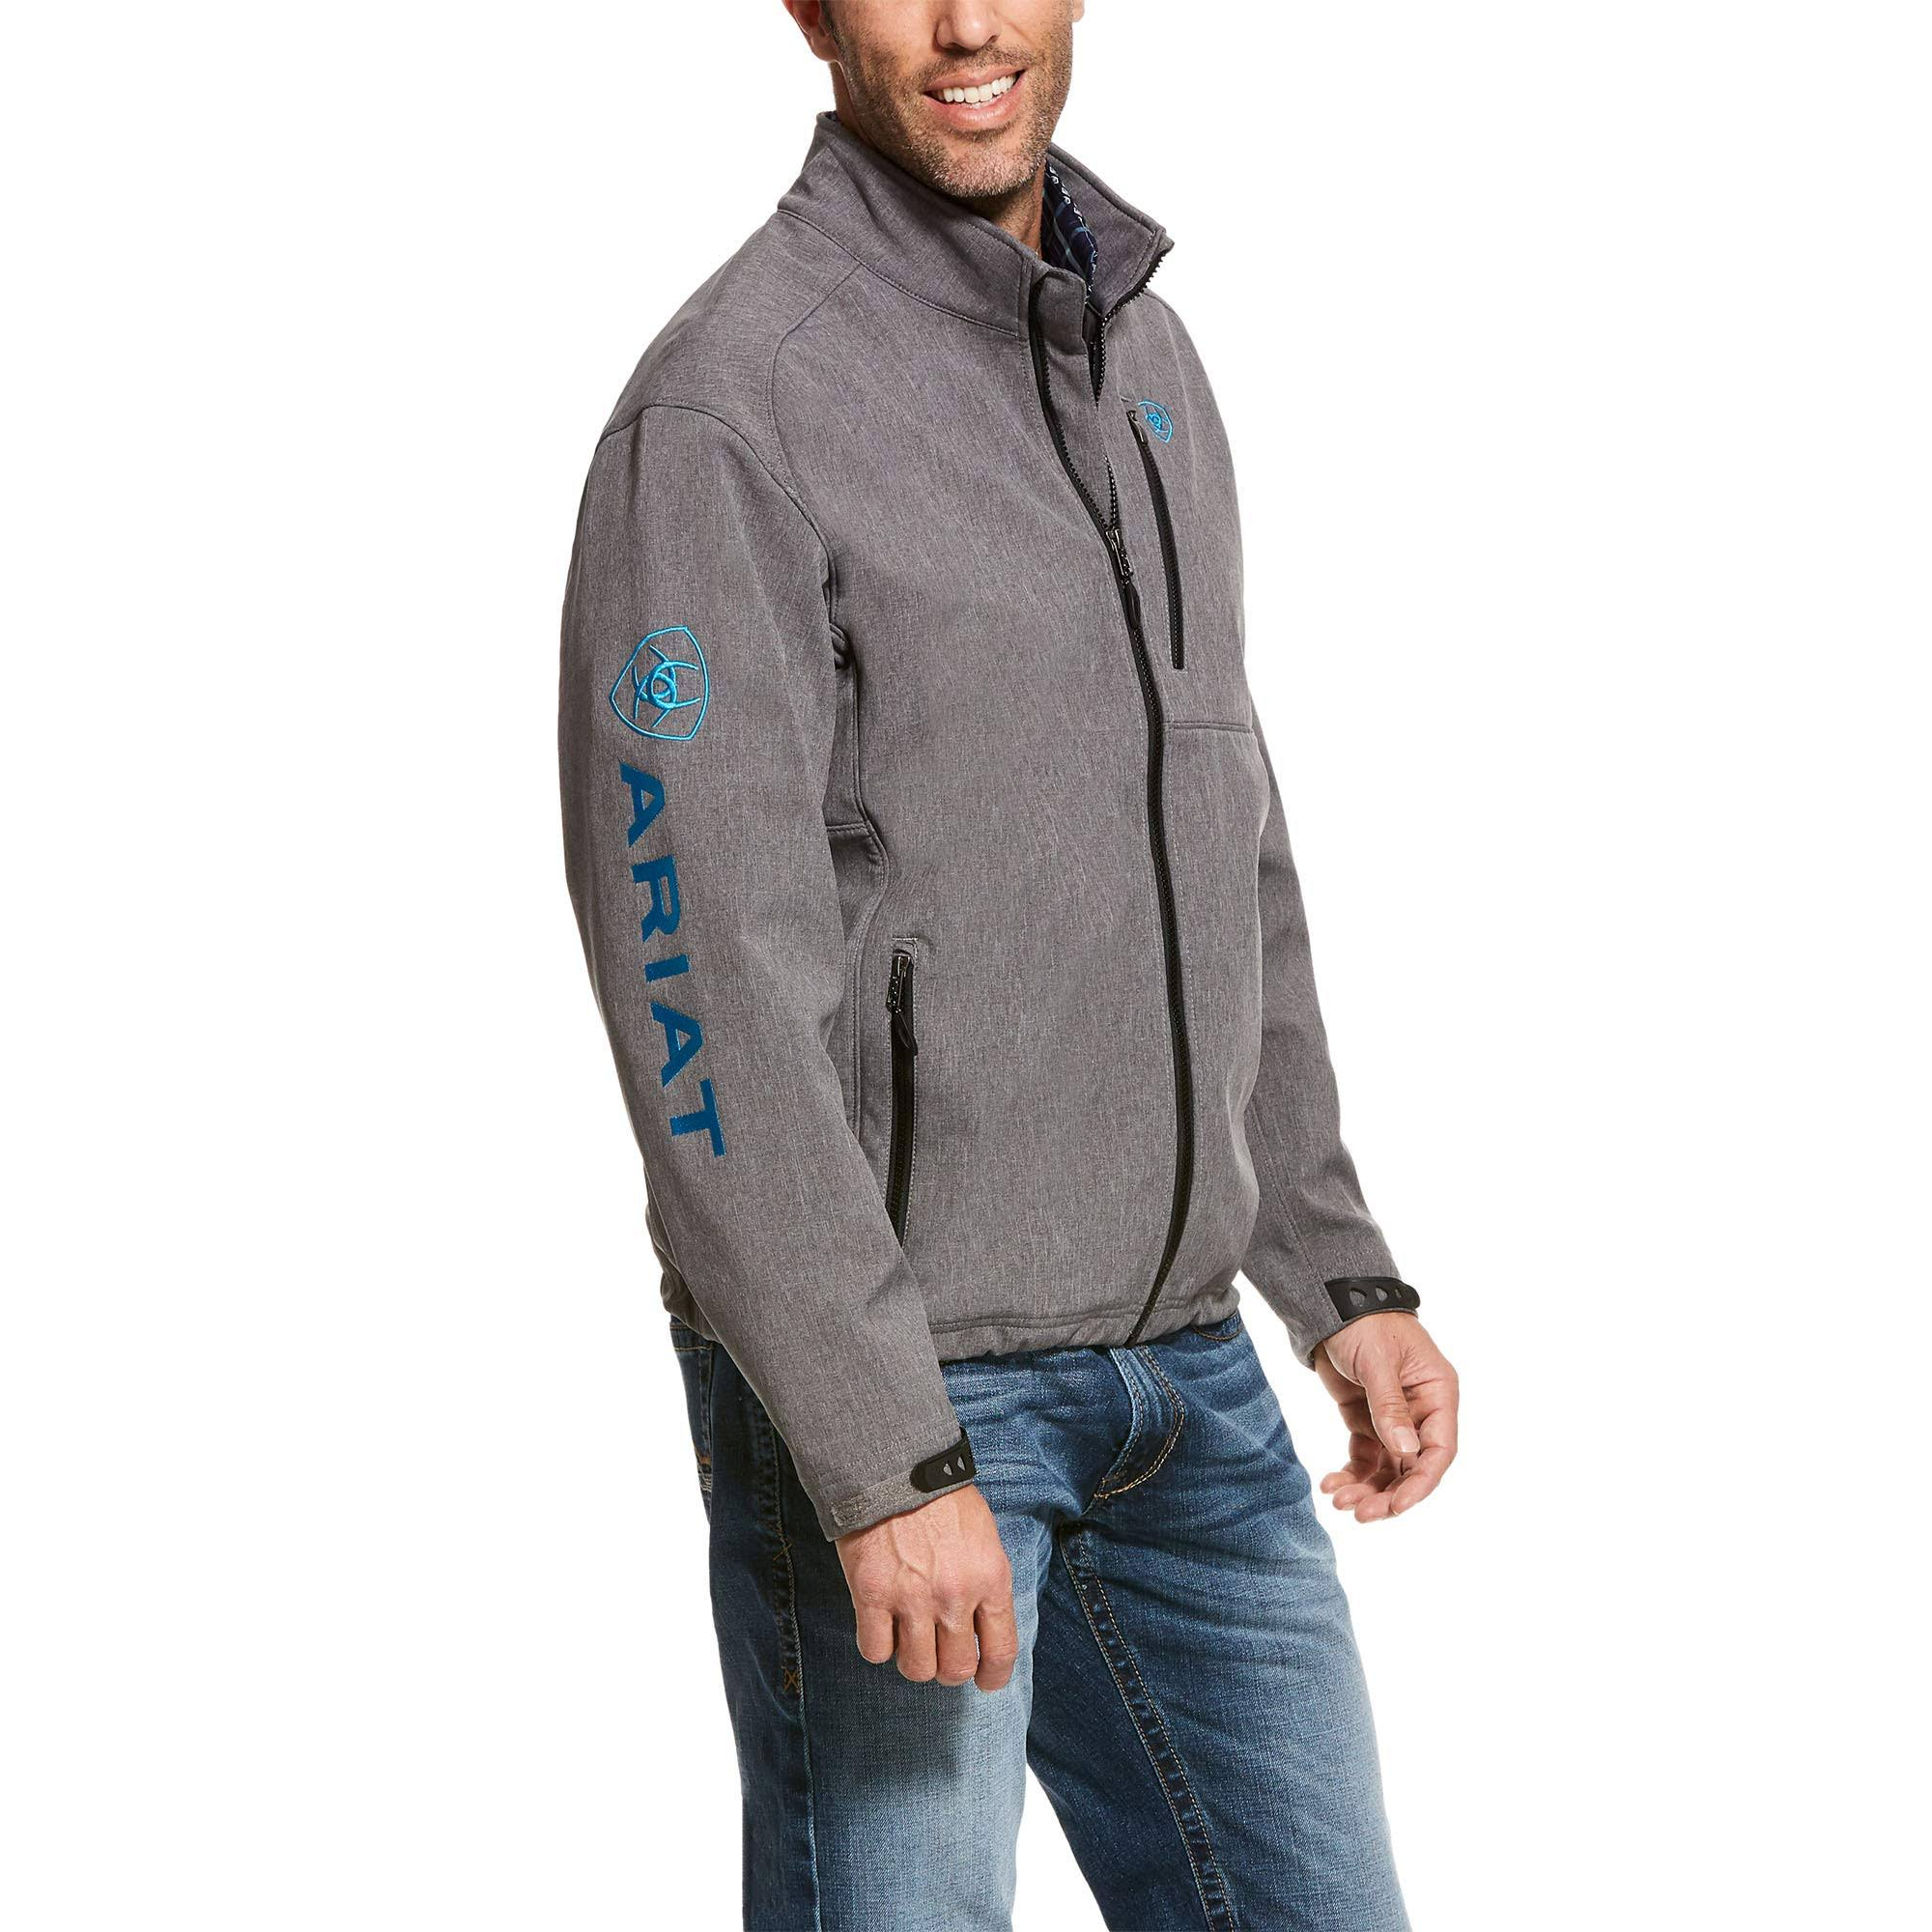 Ariat Men's Logo 2.0 Charcoal Grey & Blue Softshell Jacket 10028291